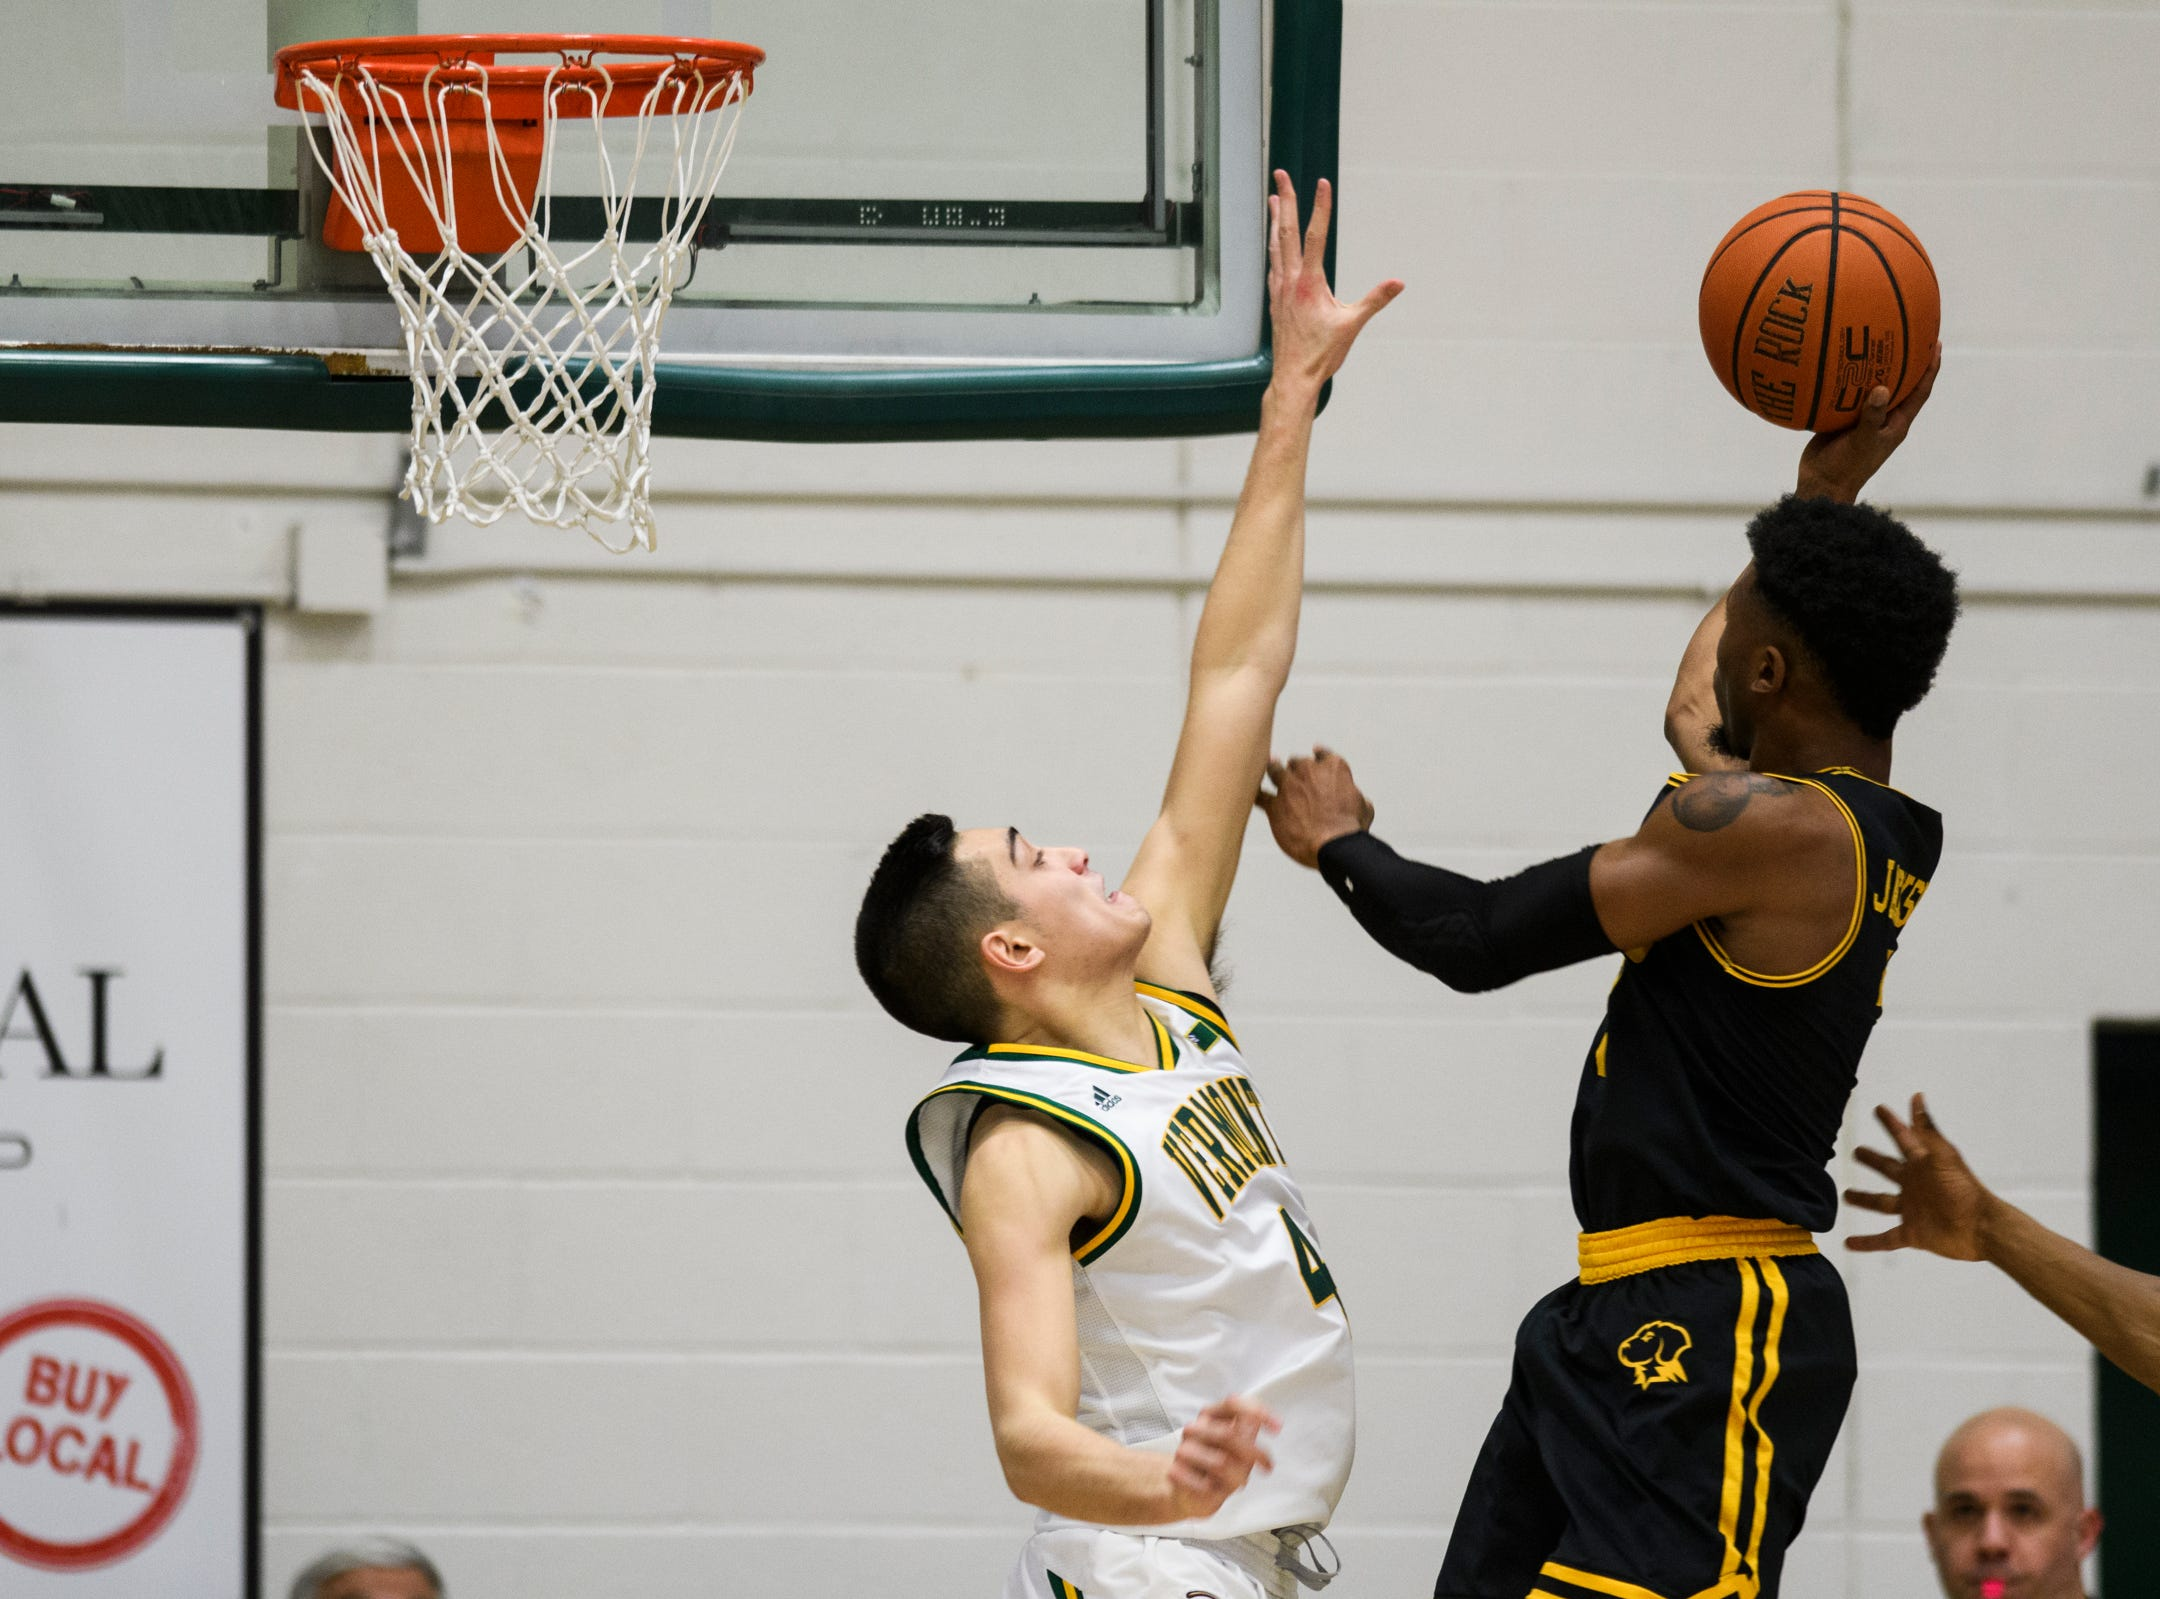 Vermont guard Robin Duncan (4) tries to block the shot by UMBC's K.J. Jackson (3) during the men's basketball game between the UMBC Retrievers and the Vermont Catamounts at Patrick Gym on Wednesday night January 23, 2019 in Burlington, Vermont.